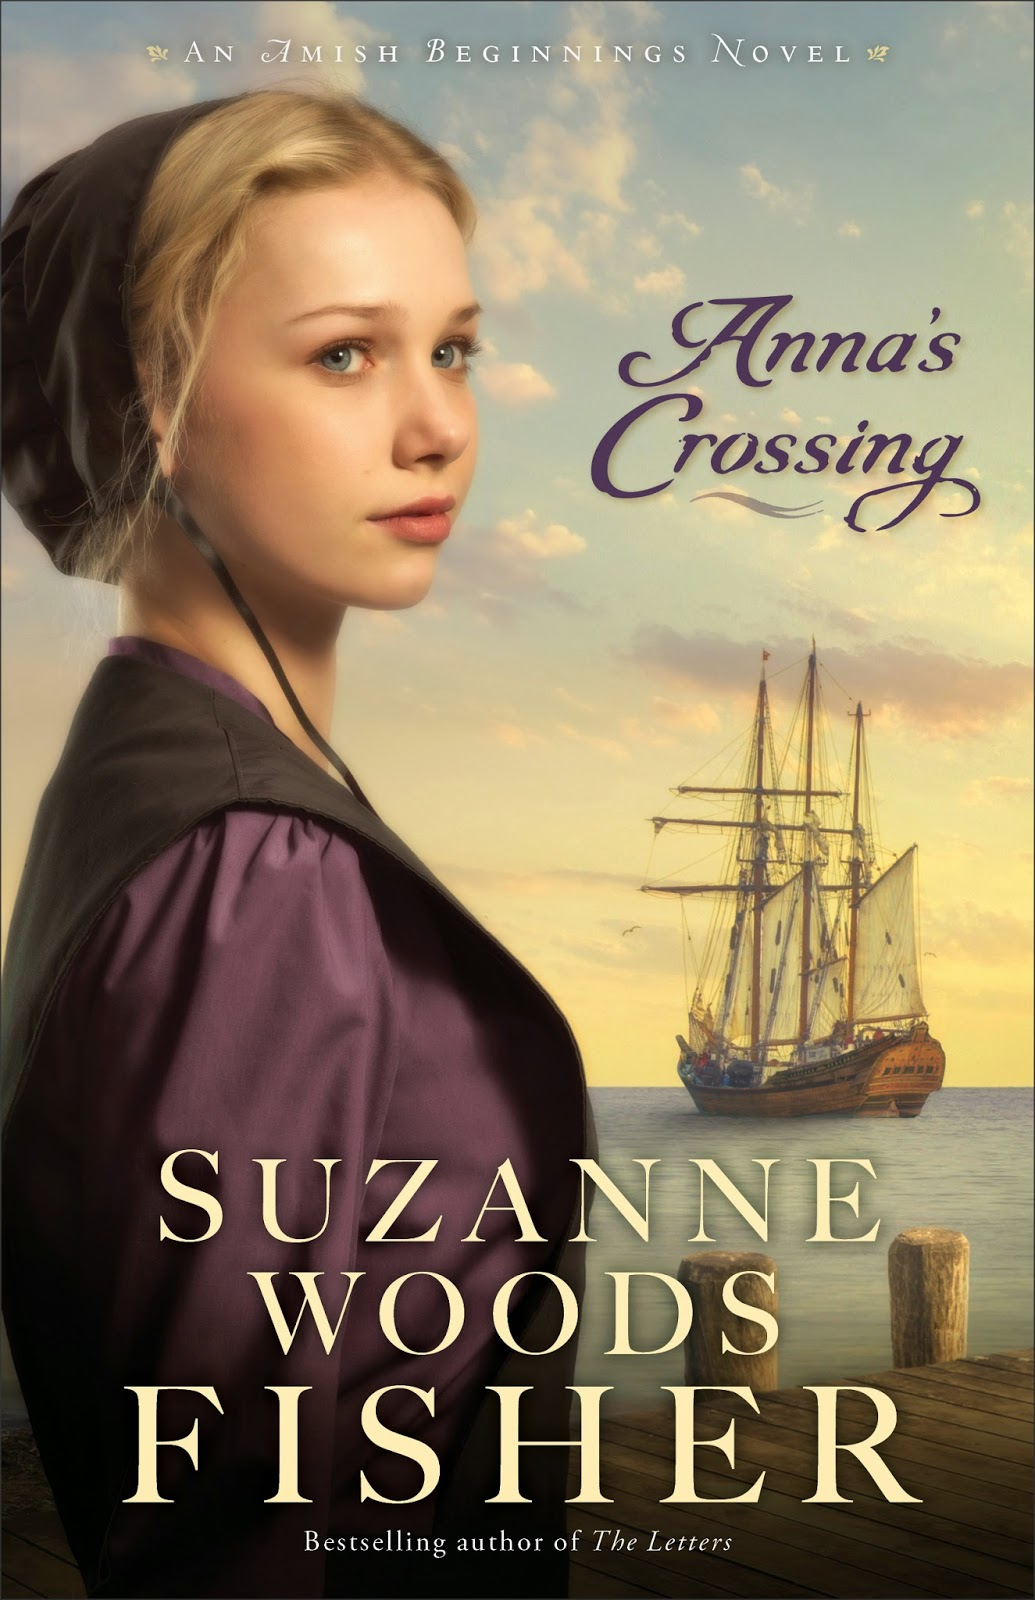 Anna's Crossing (Amish Beginnings) by Suzanne Woods Fisher